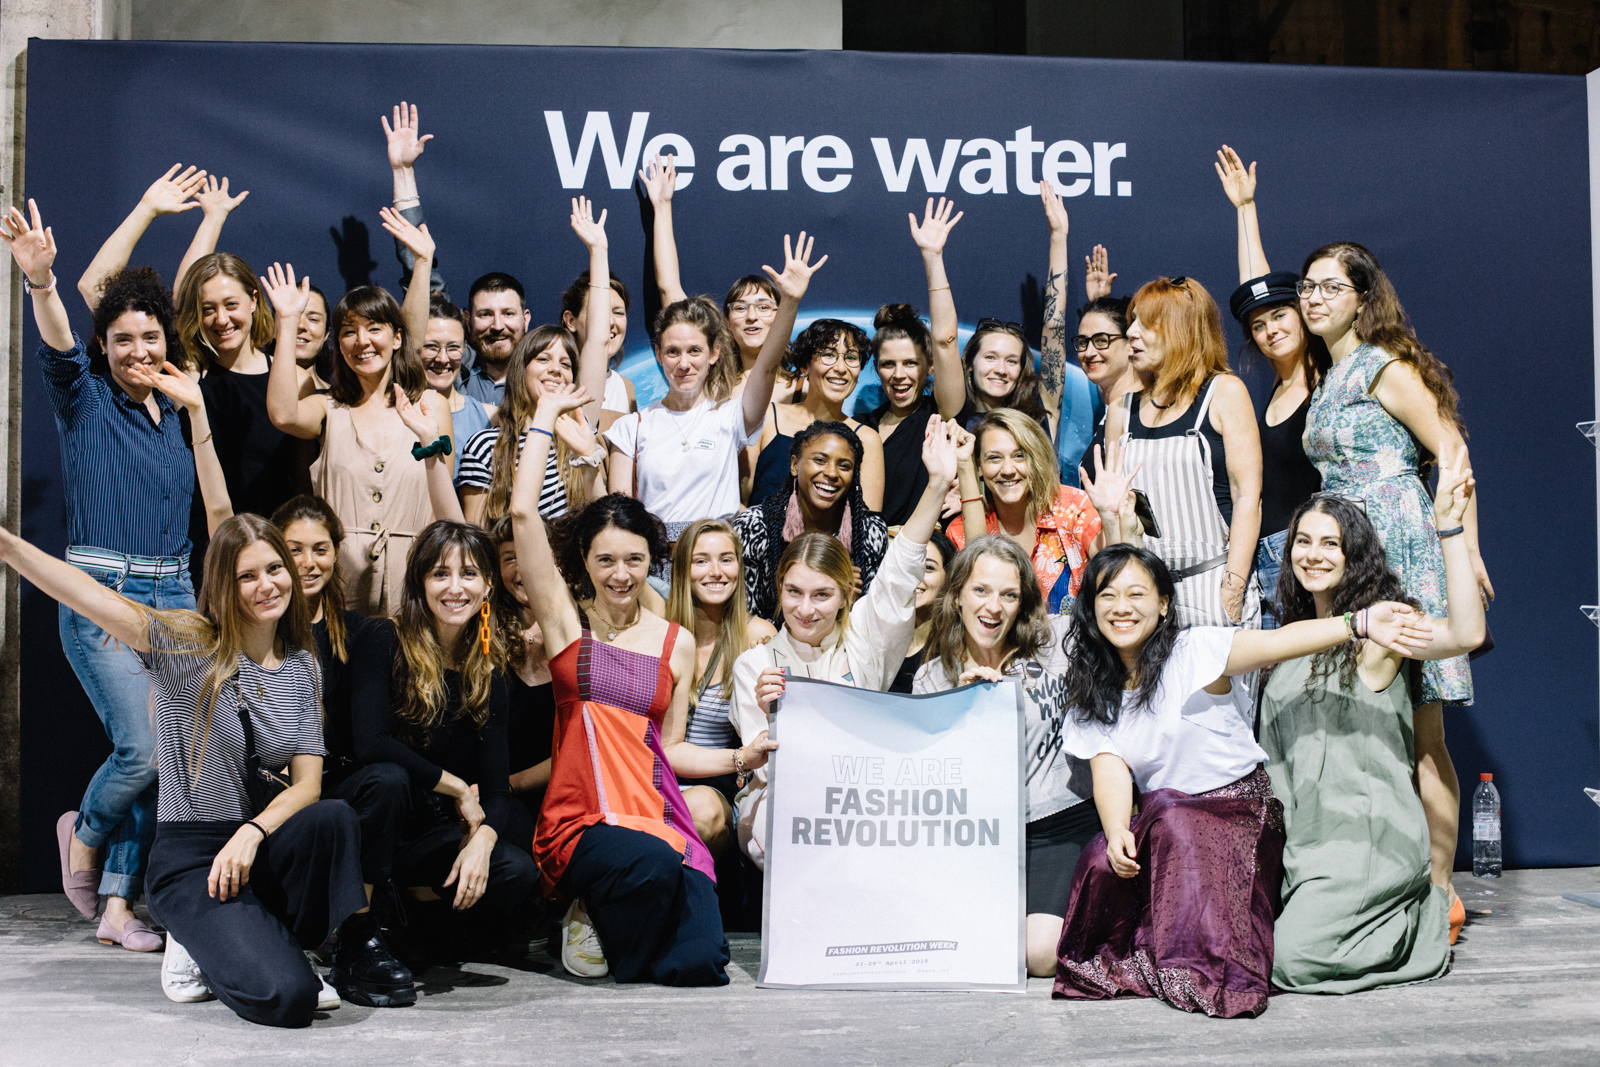 Group photo of the Fashion Revolution Assembly attendees